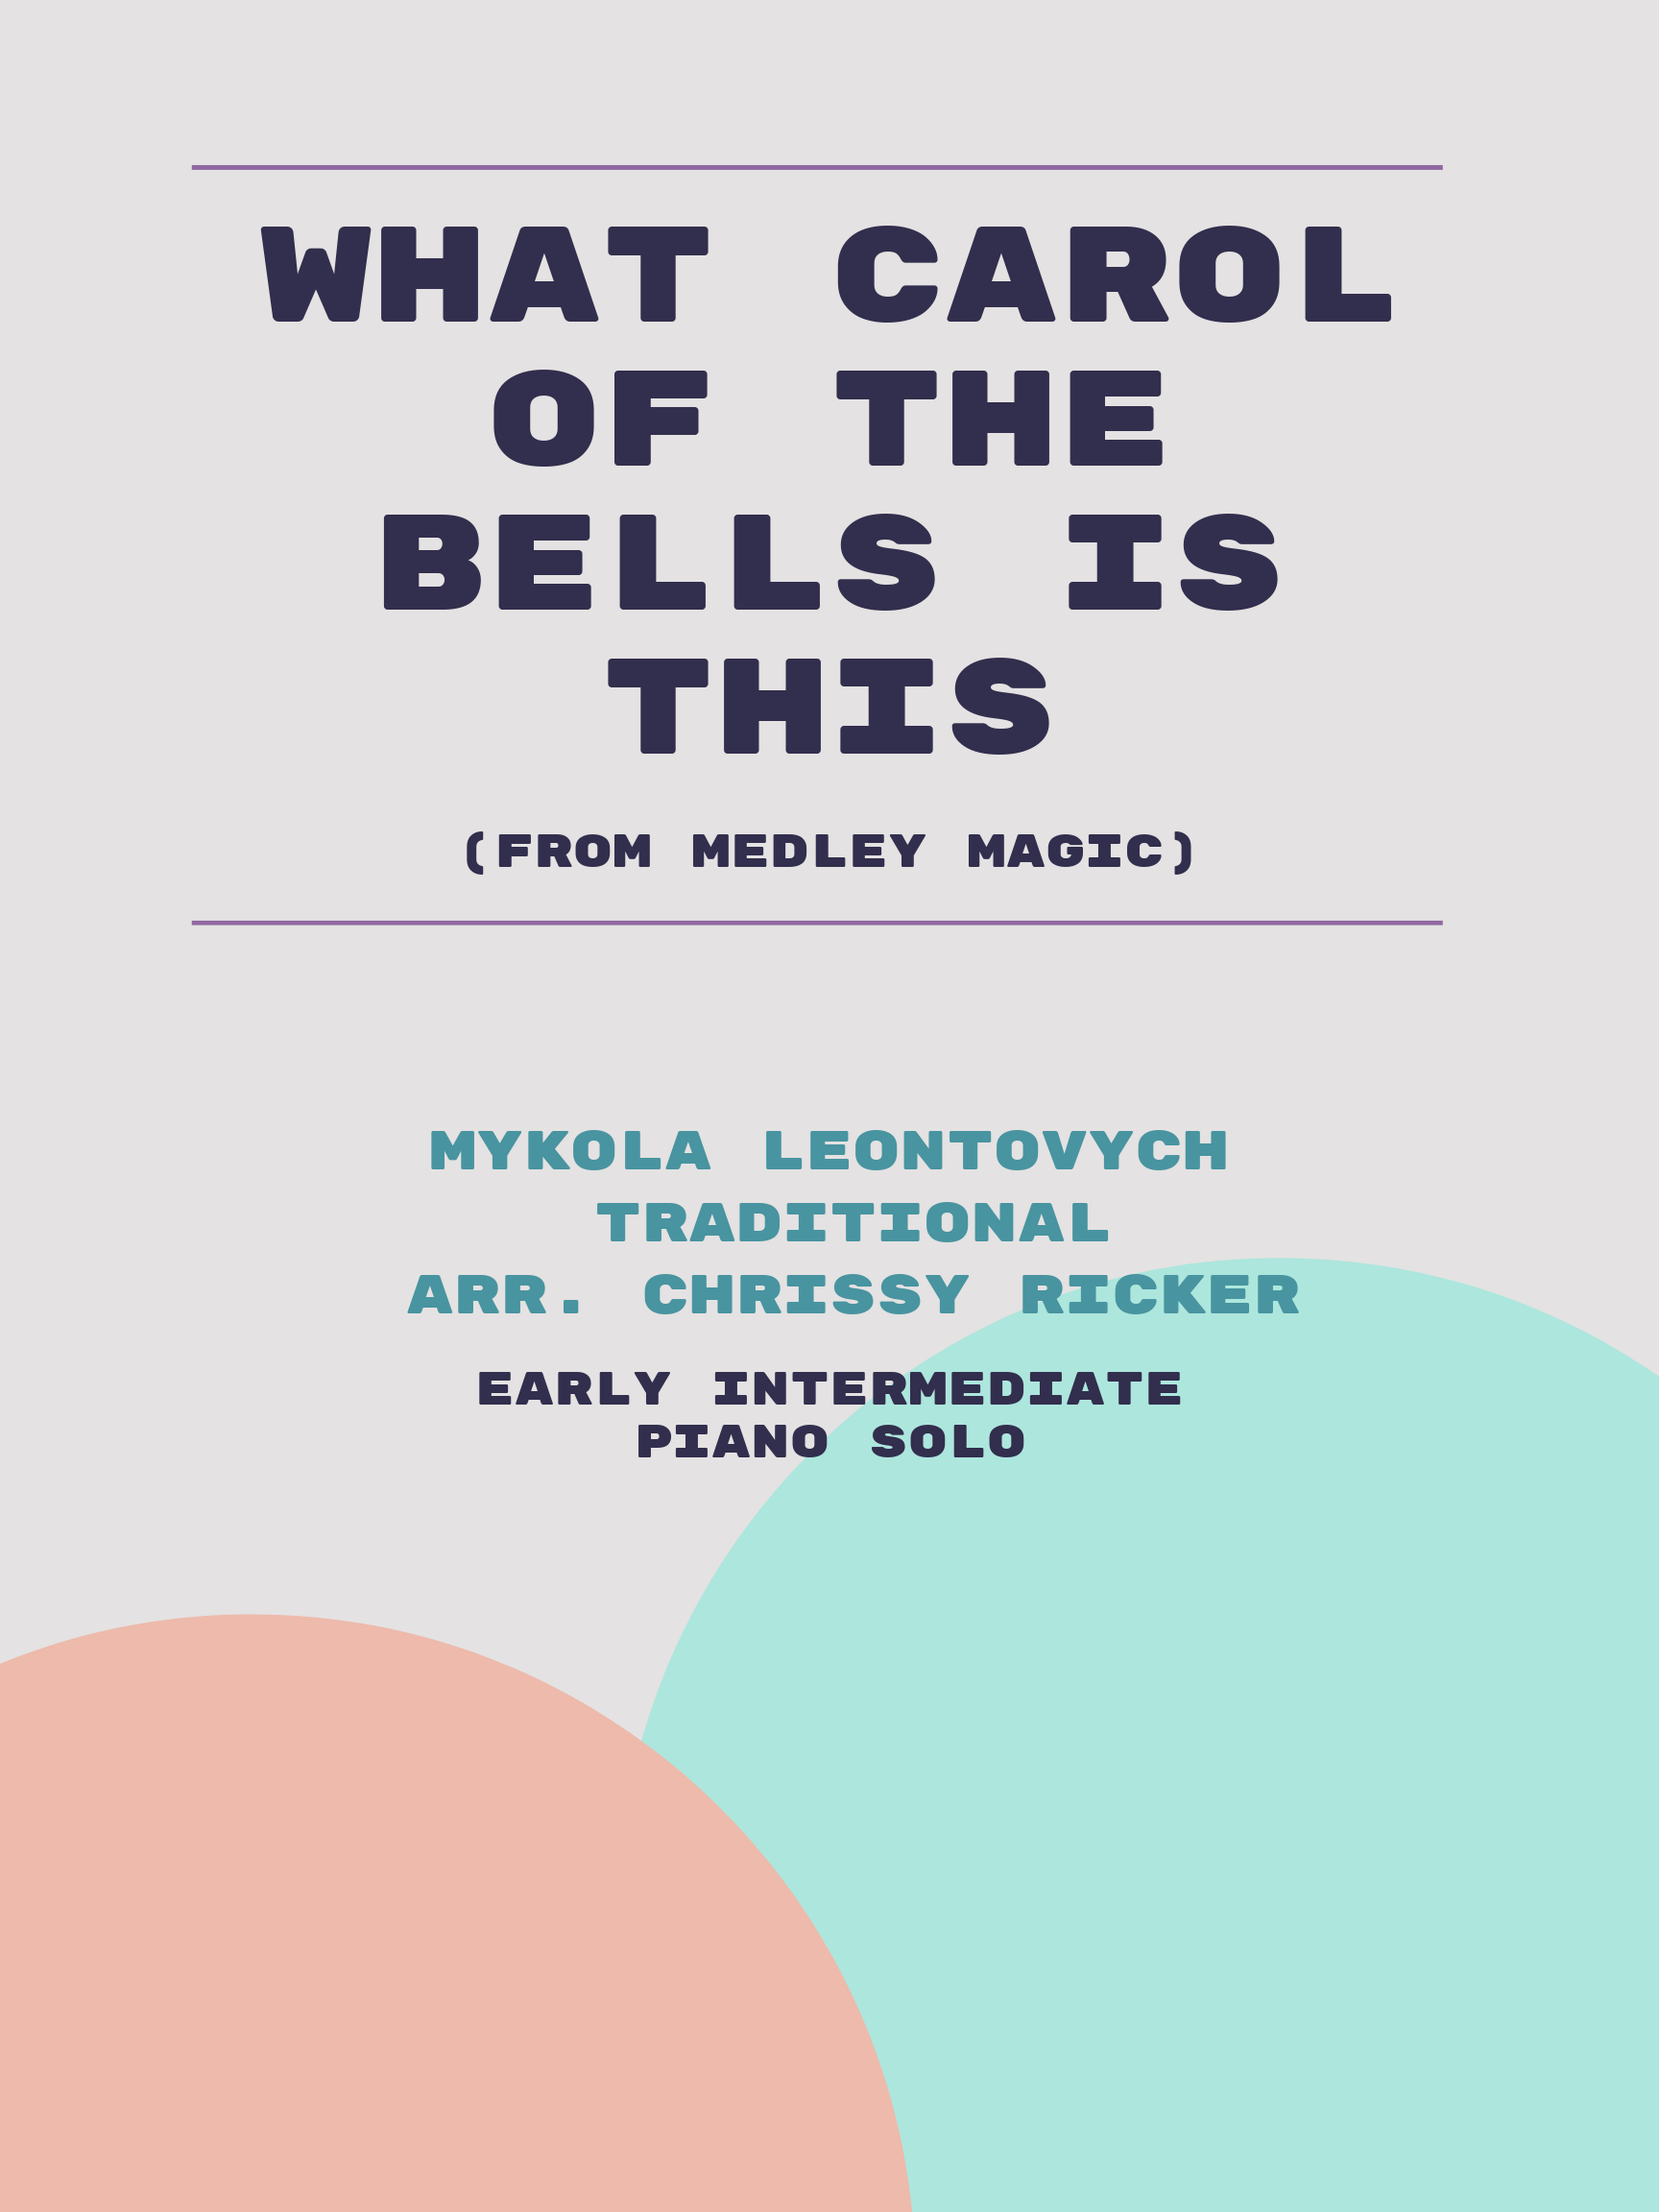 What Carol of the Bells is This by Mykola Leontovych, Traditional